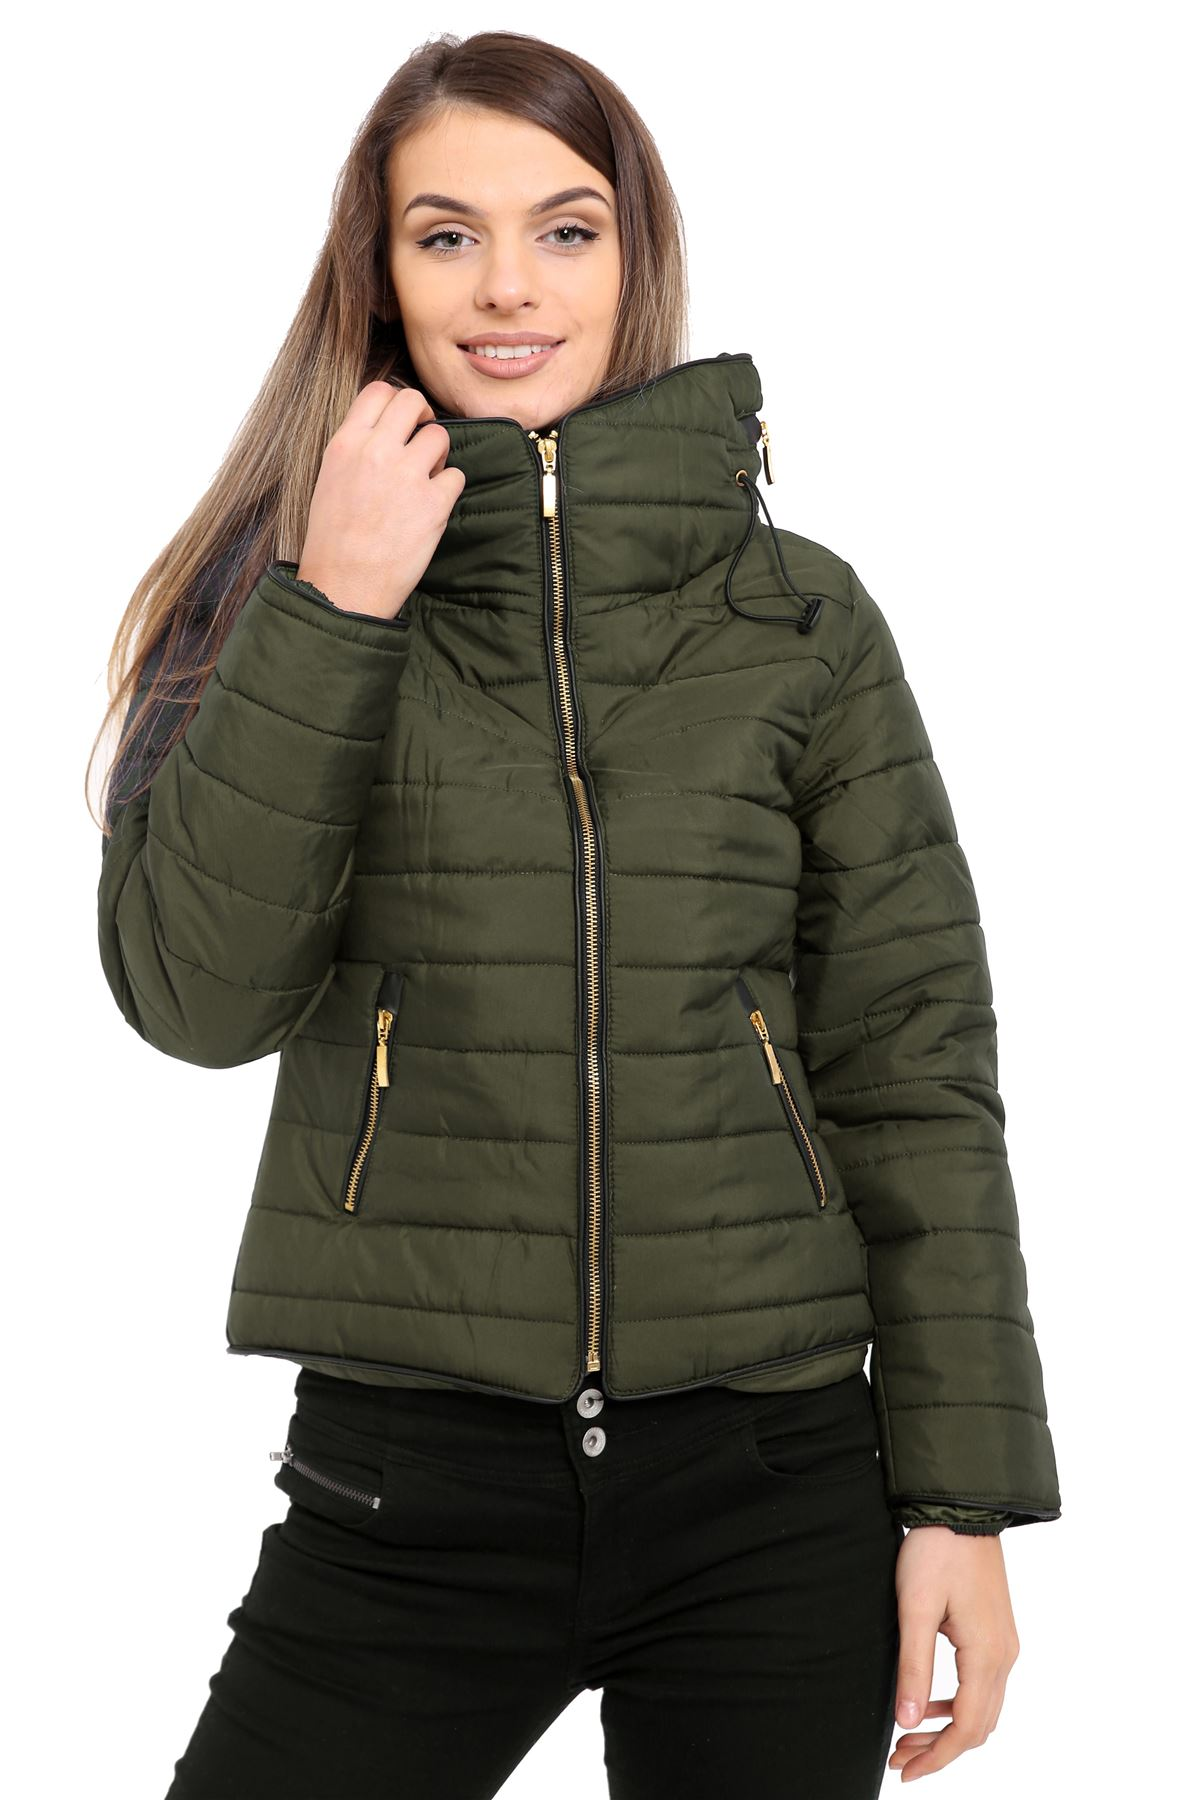 Product Features It has the look and feel of a puffer coat without being to puffed.